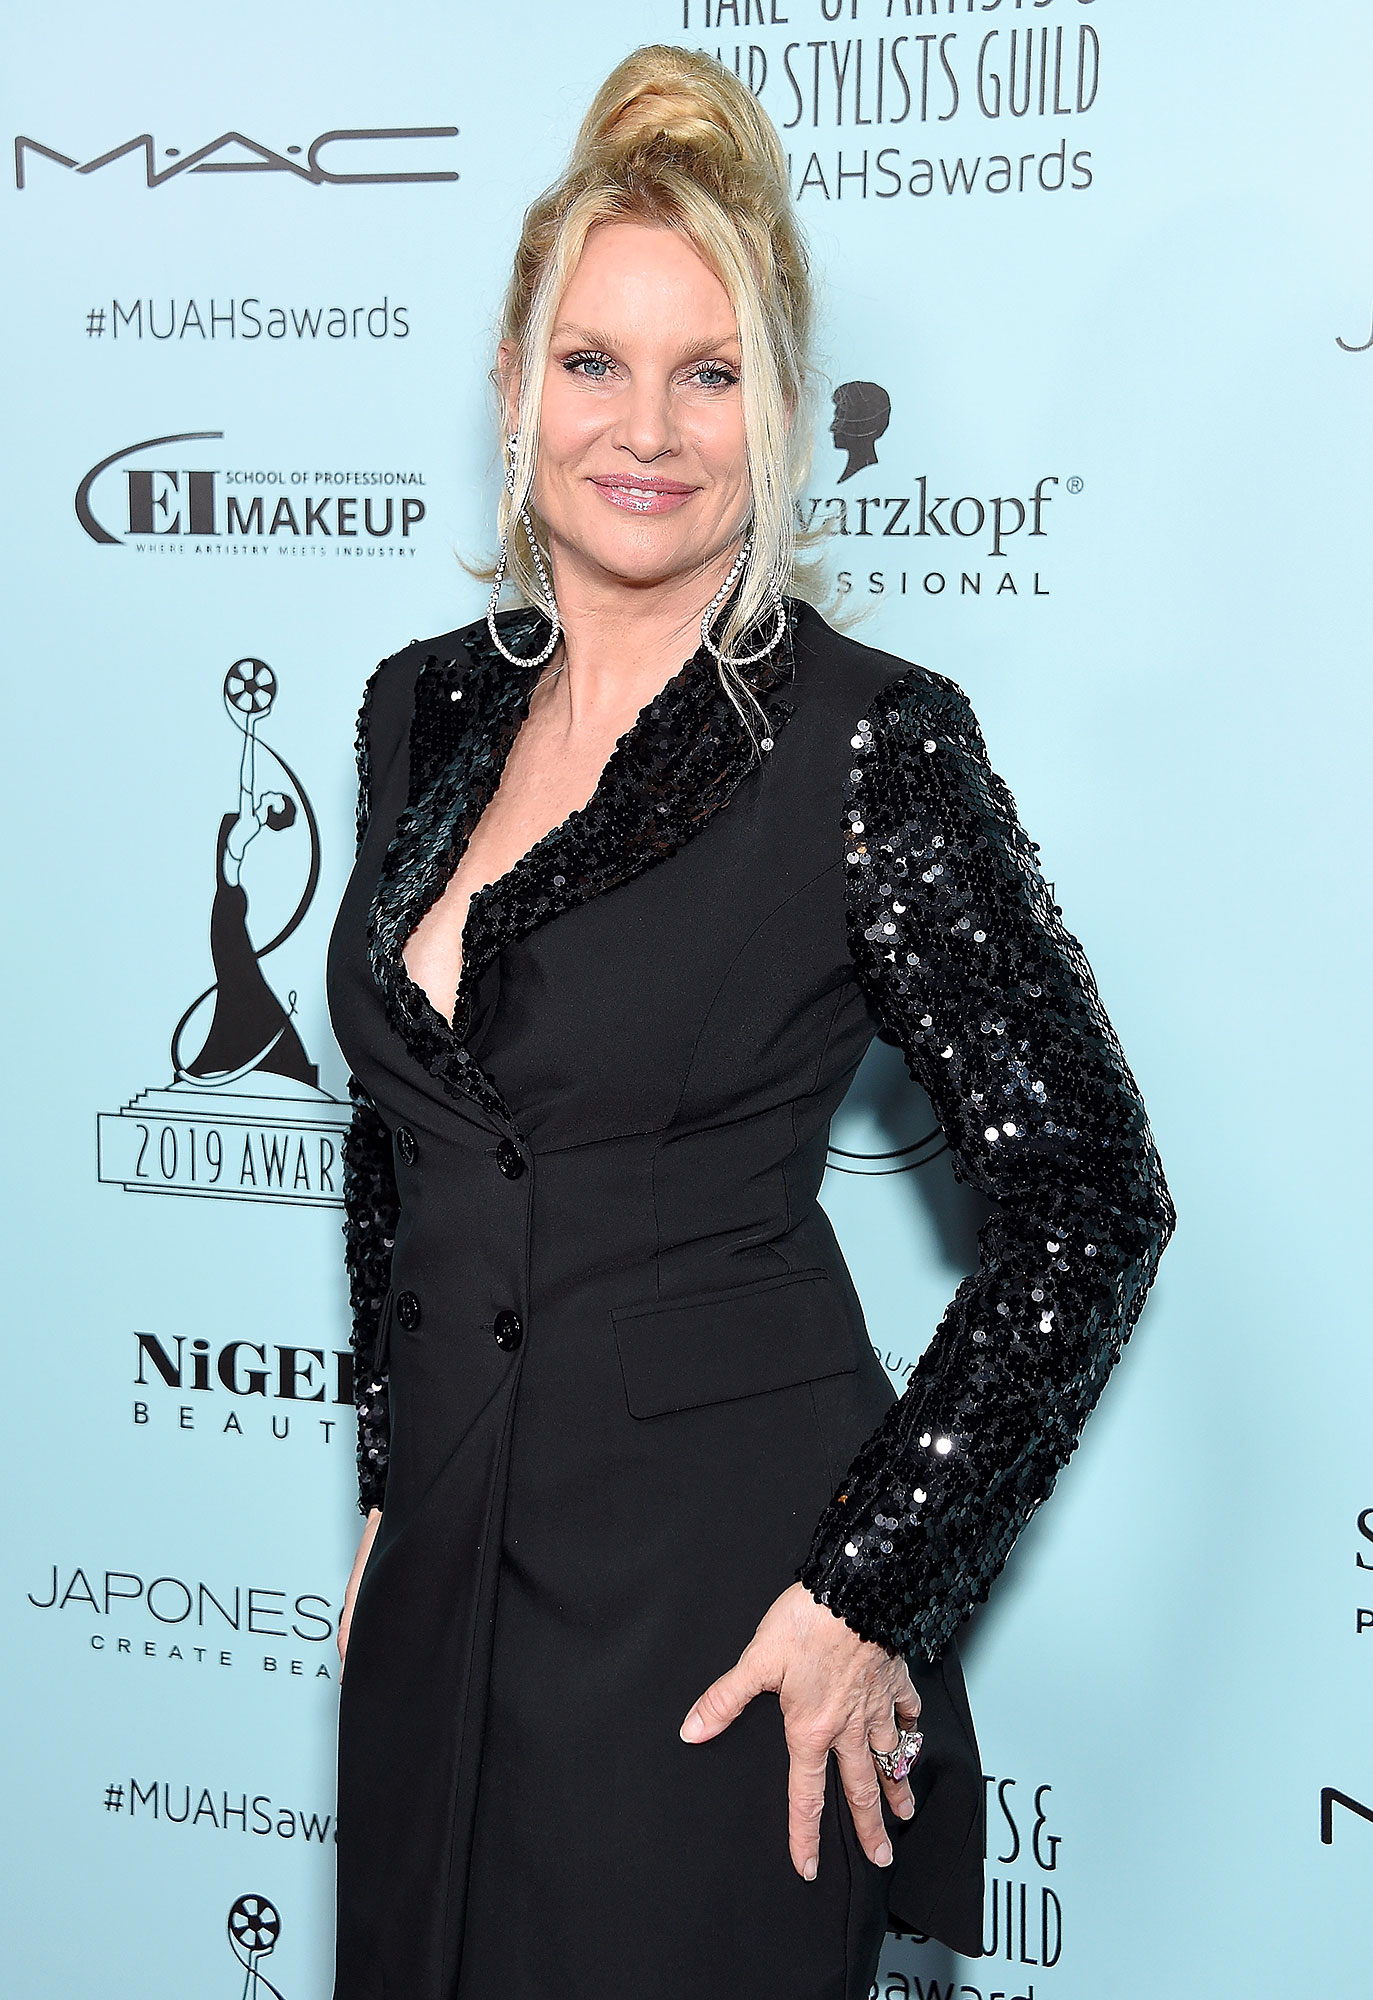 """Nicollette Sheridan GALLERY UPDATE: Shocking TV Exits - In February 2019, Sheridan announced her decision to leave Dynasty , after taking the role of Alexis Carrington amid much fanfare midway through the CW reboot's first season. """"Working on the Dynasty reboot and reprising the iconic role of Alexis has been thoroughly enjoyable, but the chance to spend precious time with my terminally ill mother is more important to me right now,"""" the actress said in a statement to Us Weekly ."""